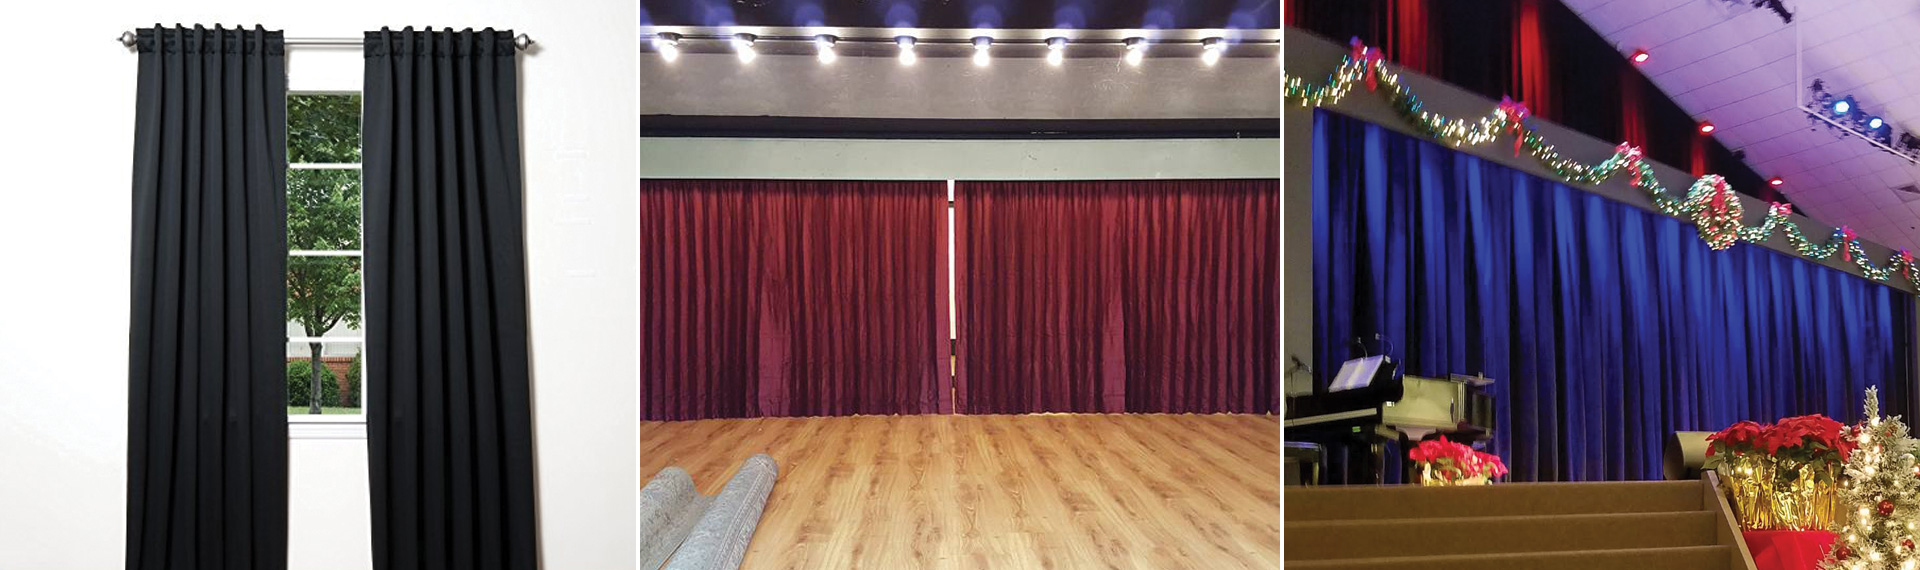 Custom Sewn, Luxury Cotton Velvet Curtains Huntington Beach CA